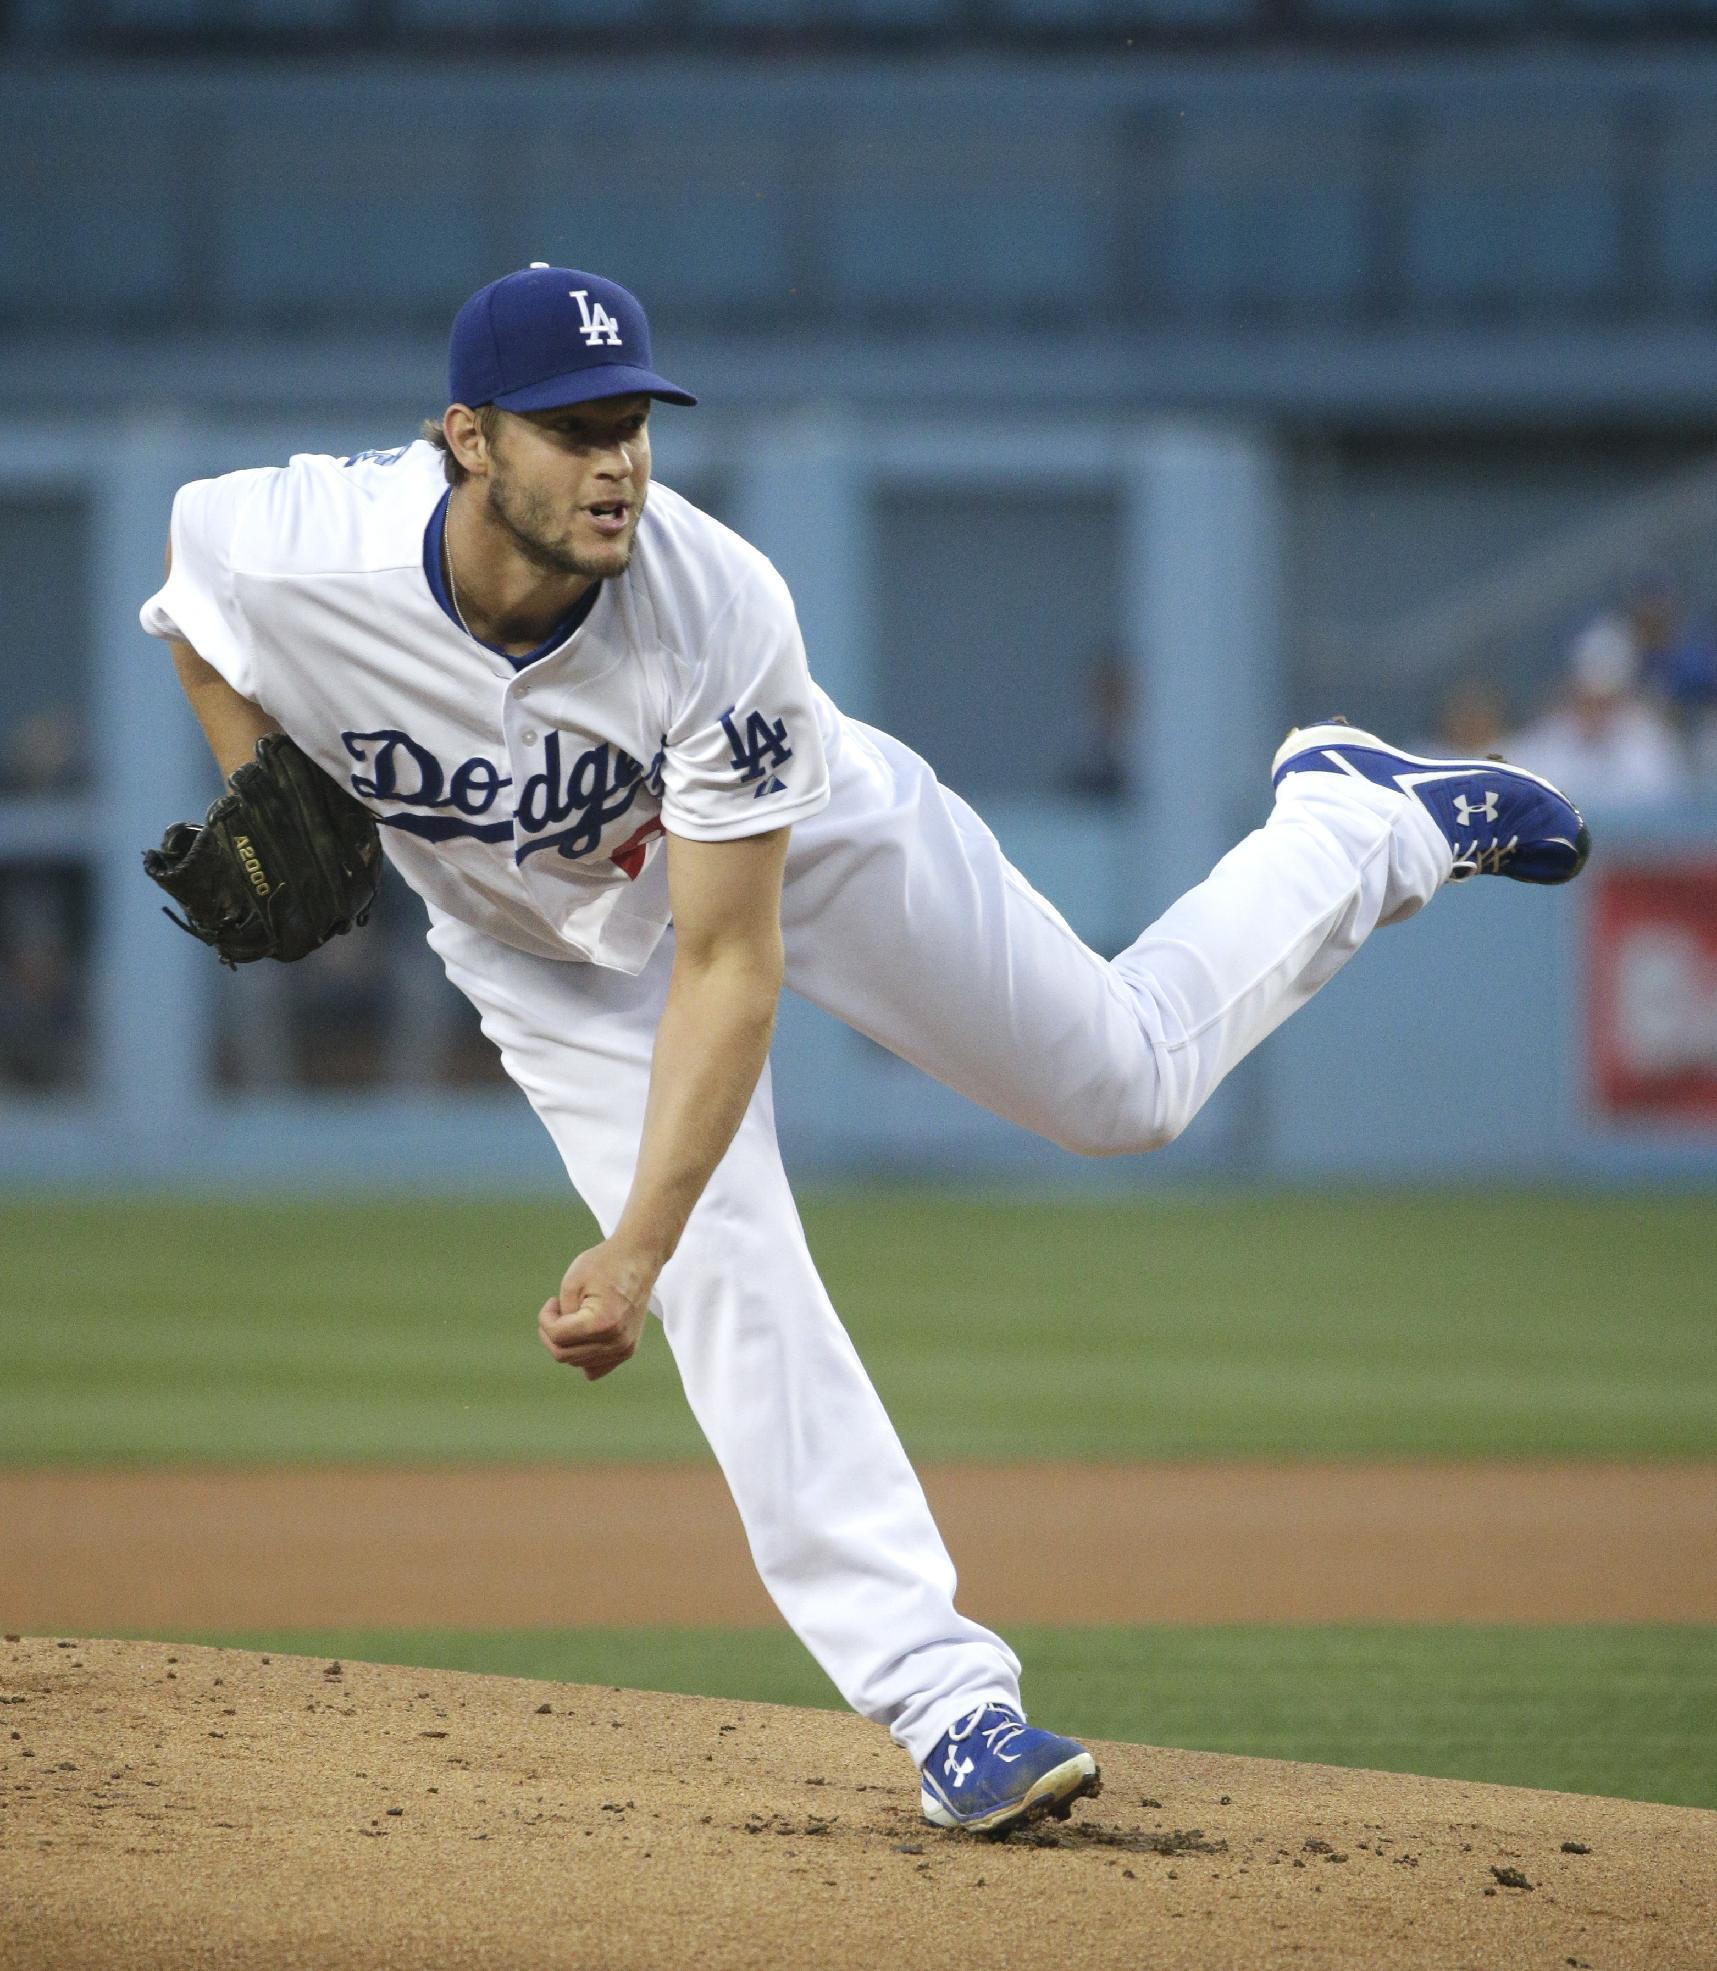 Clayton Kershaw gets 1st win as Dodgers beat Rockies 7-3